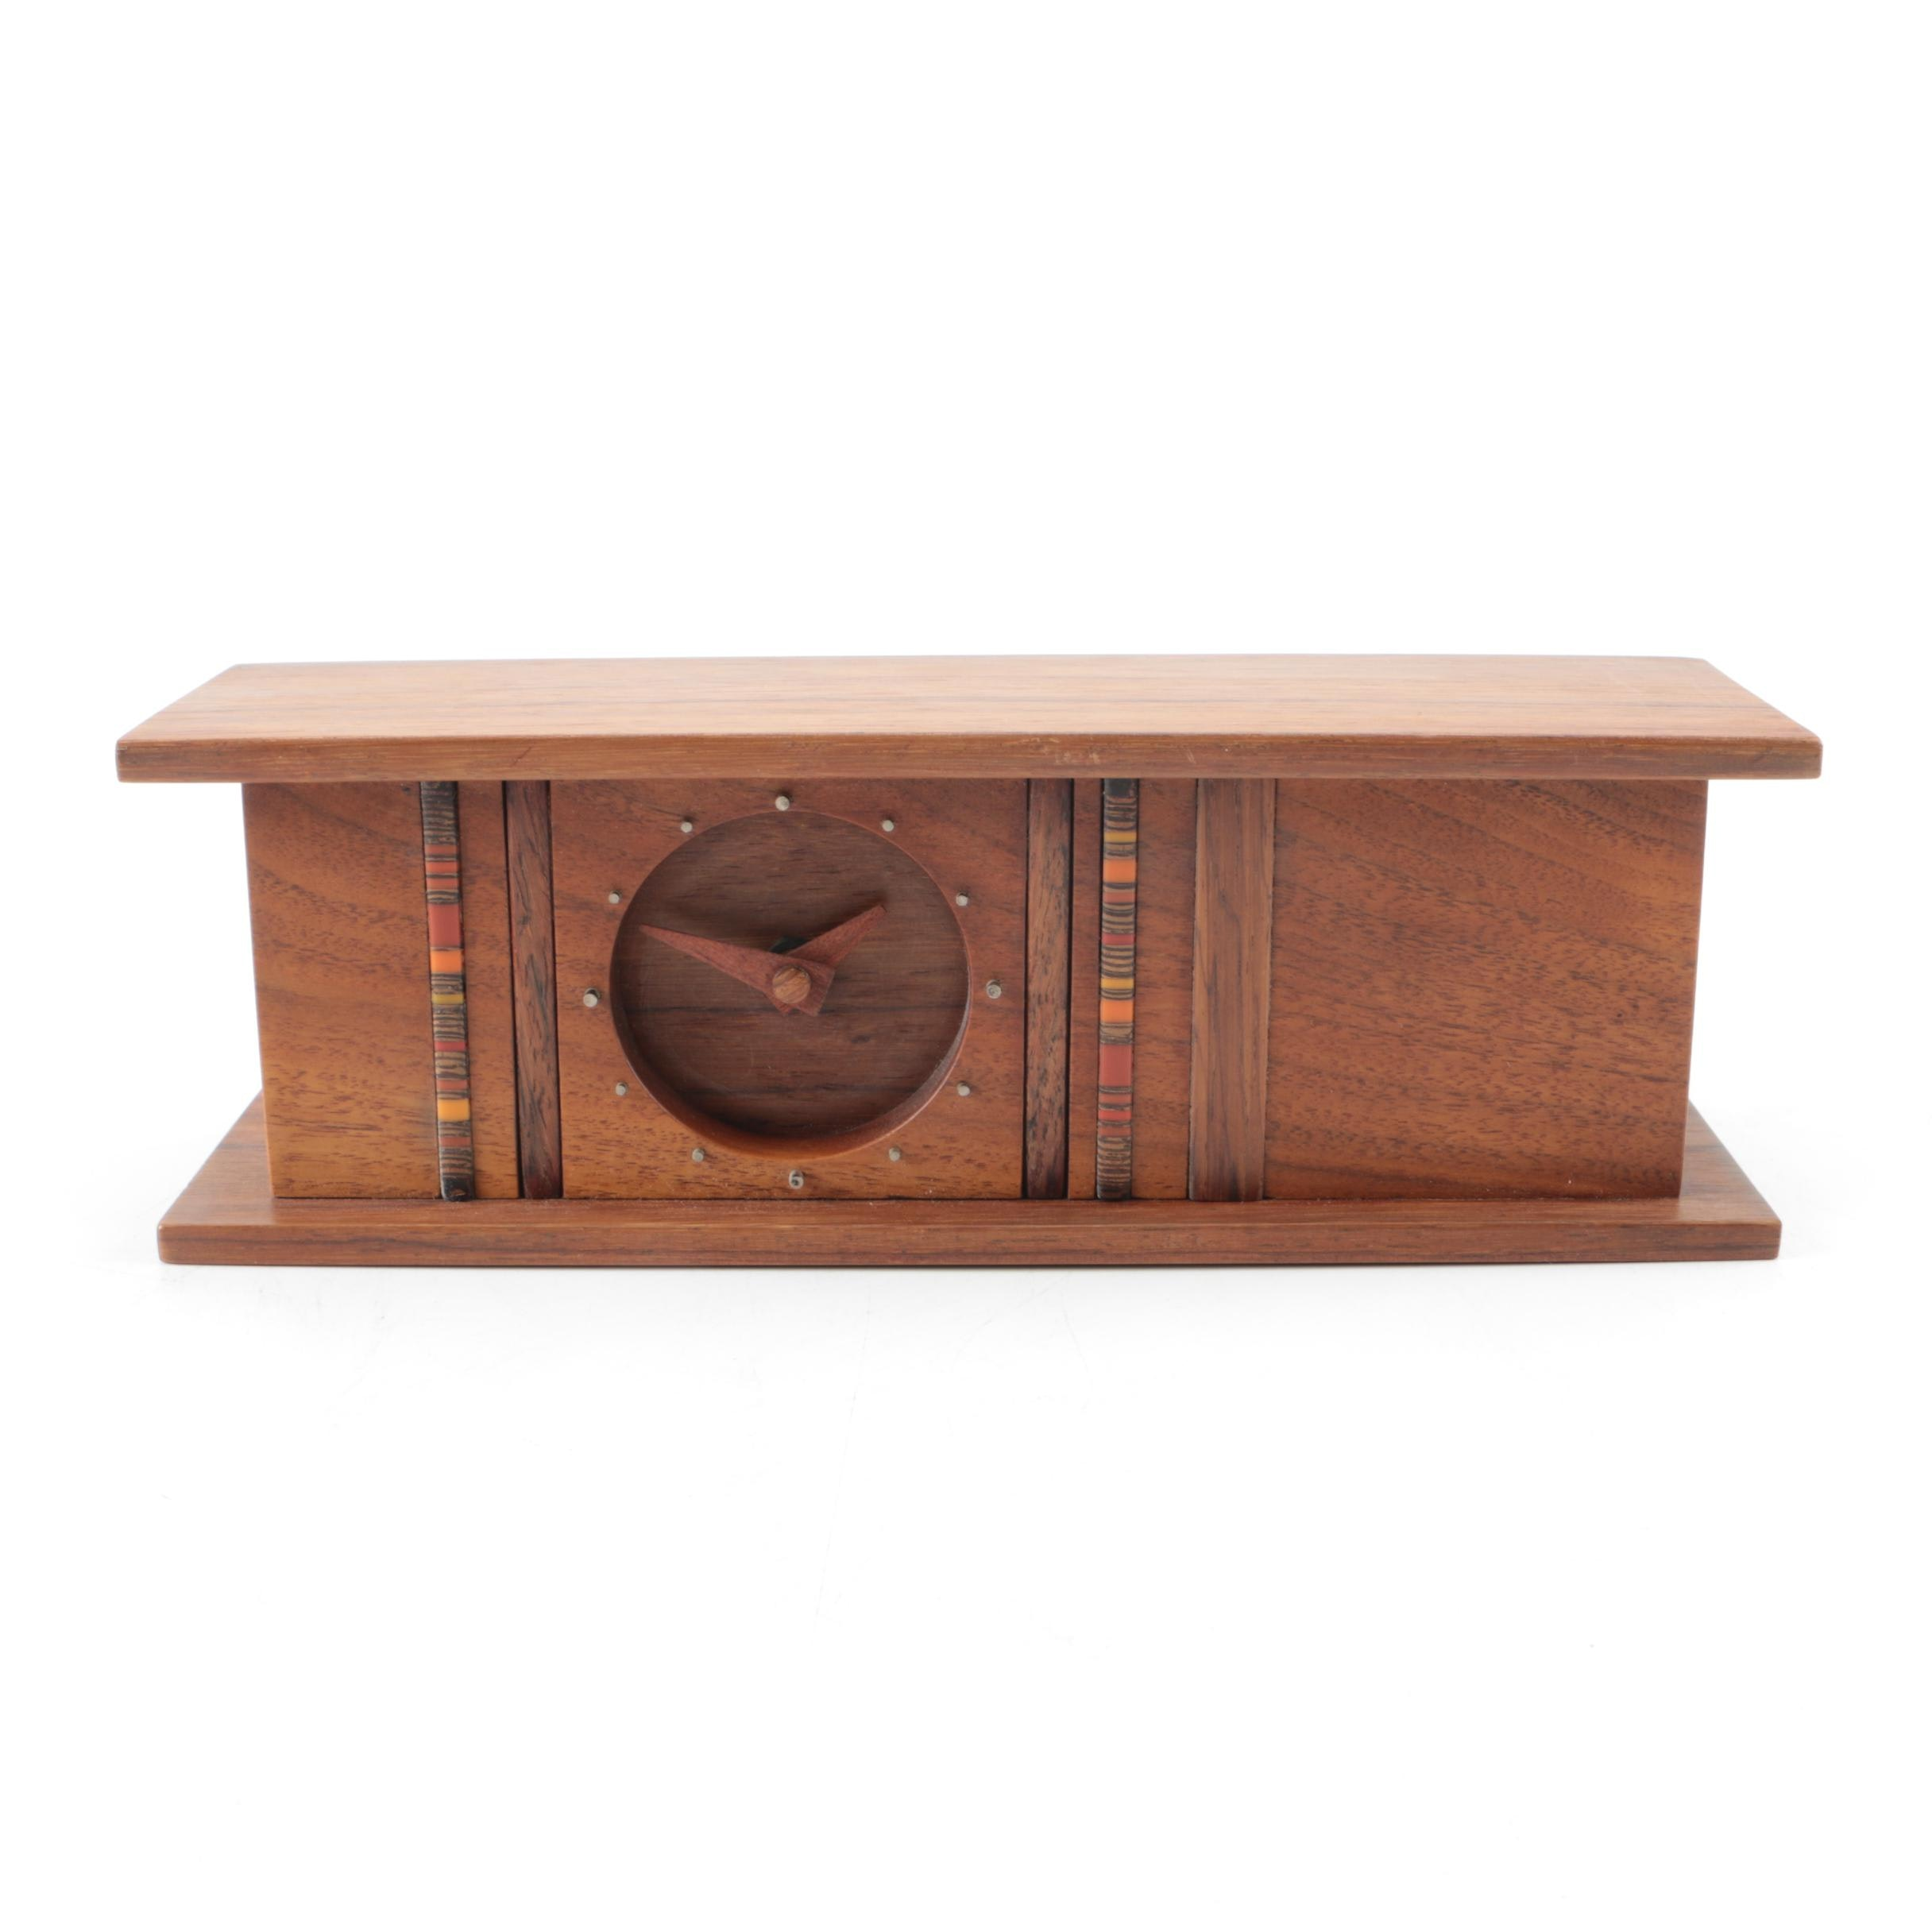 Contemporary Signed Wooden Mantel Clock